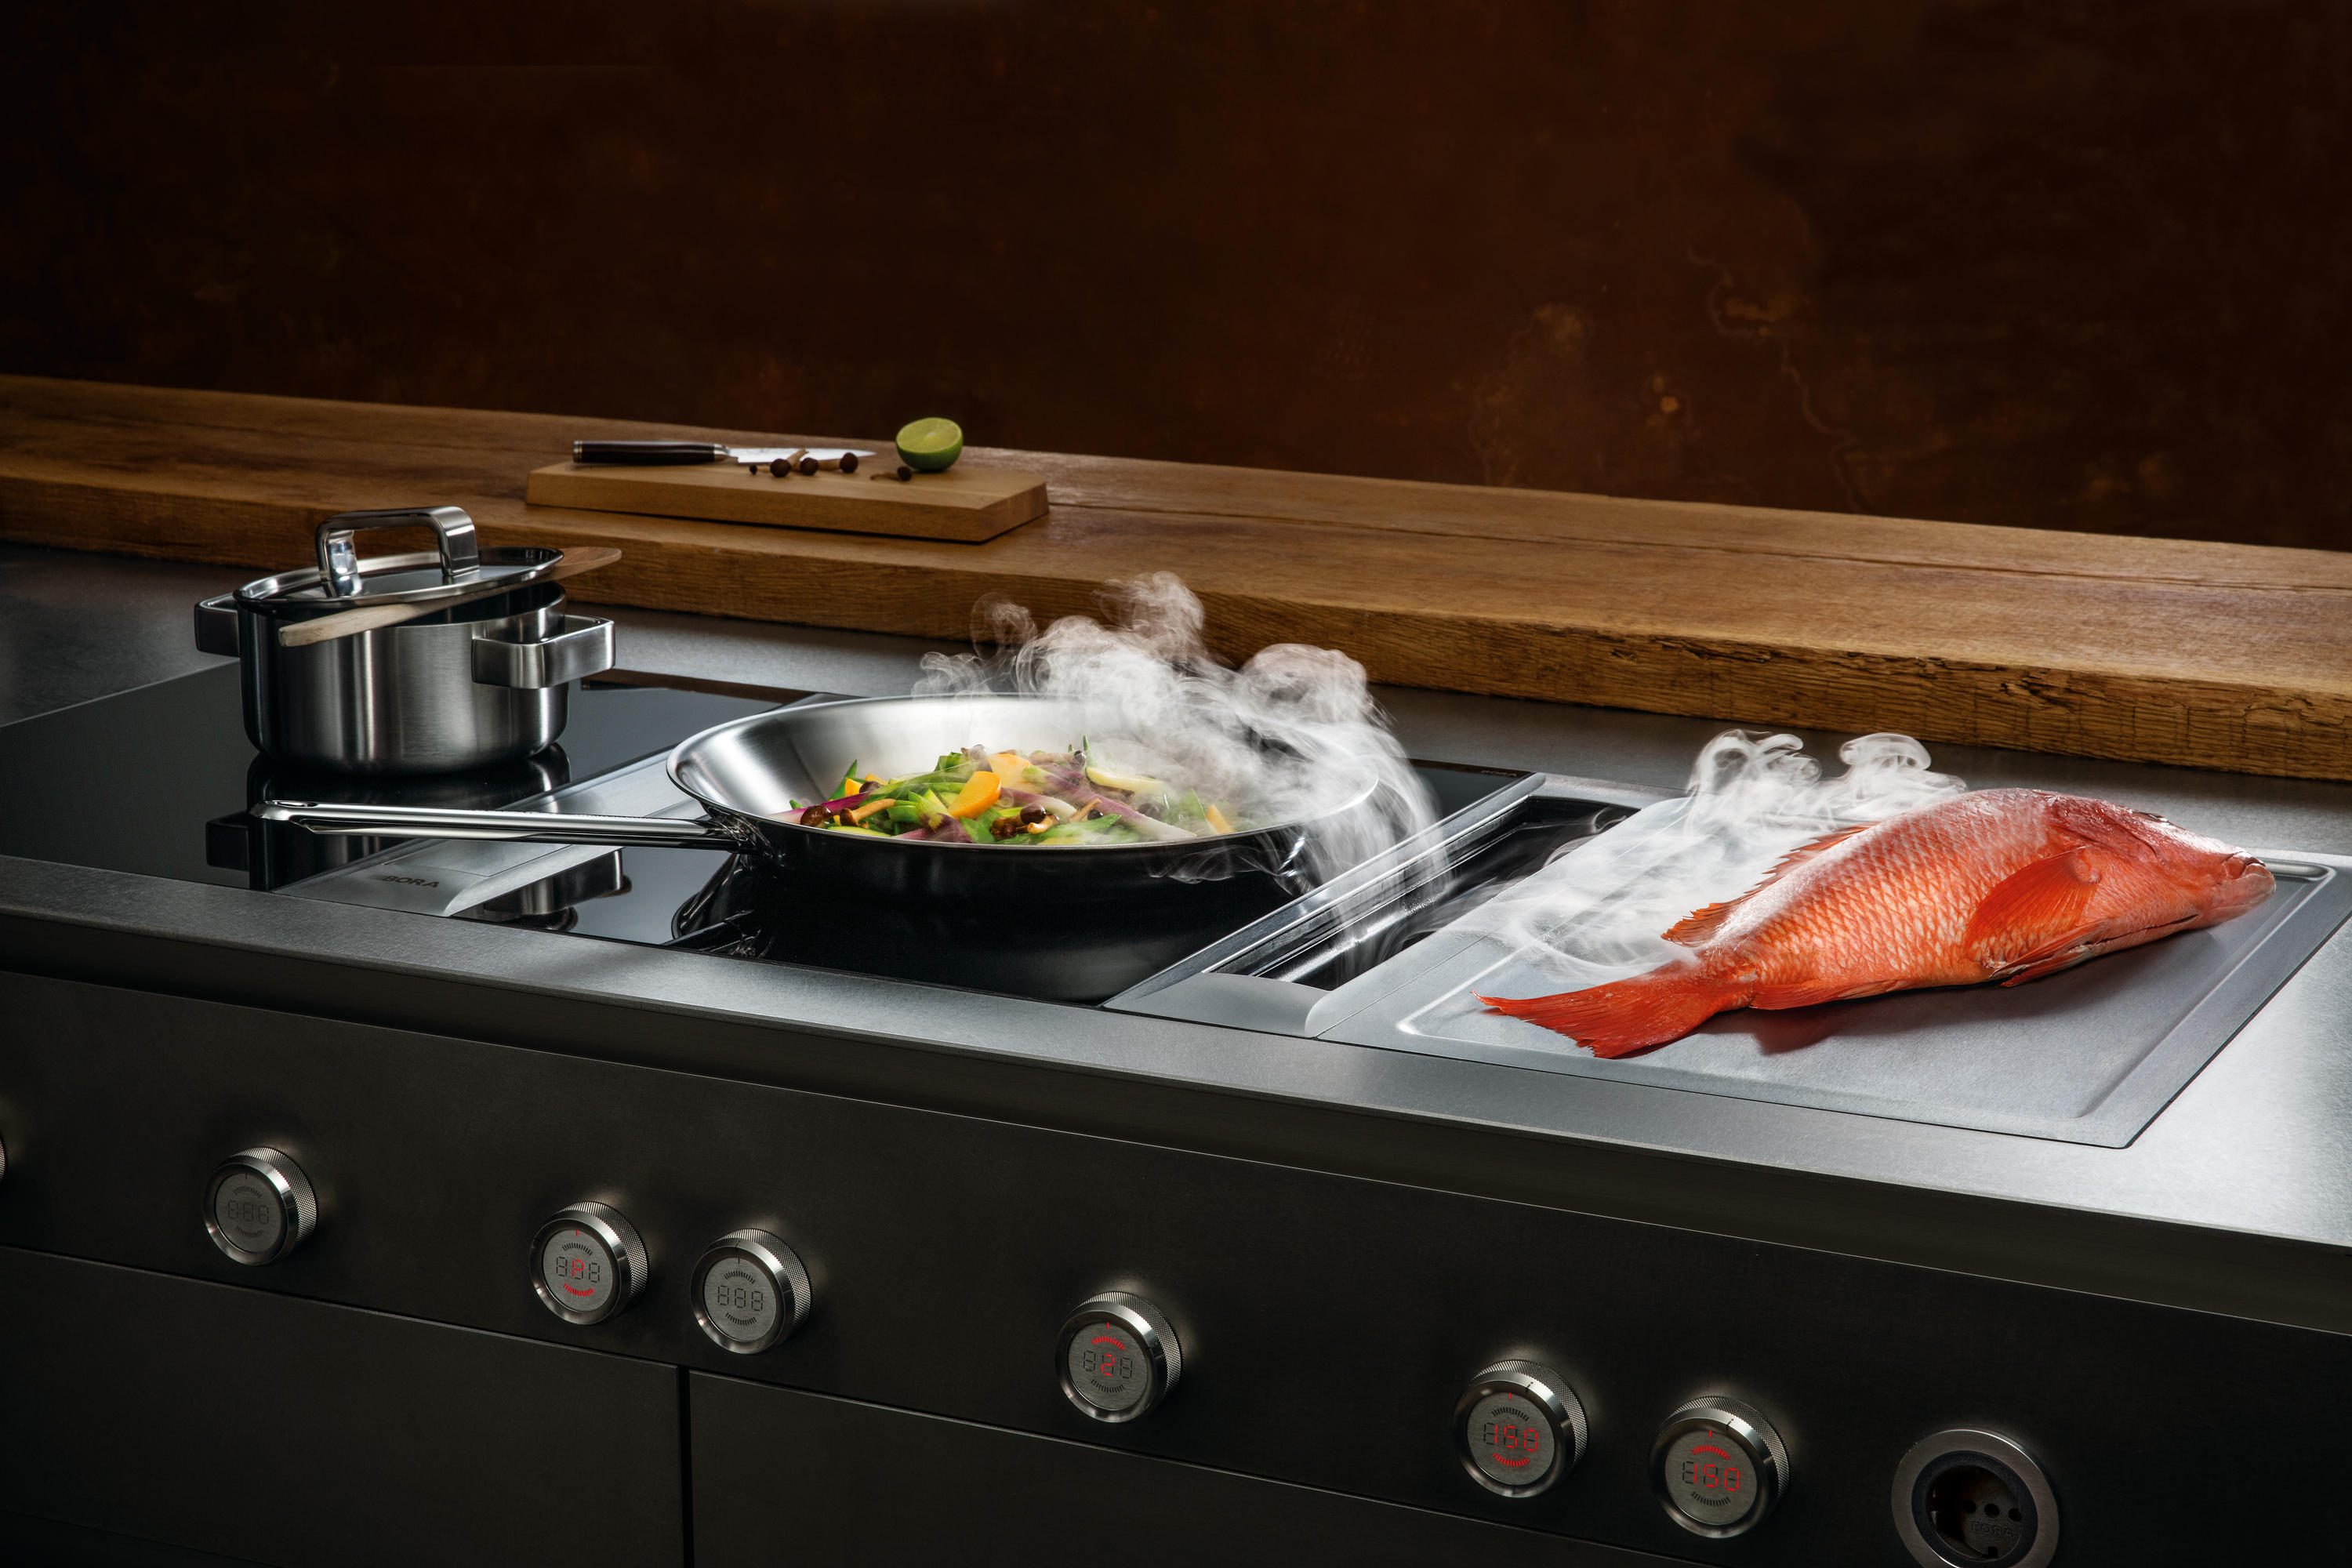 pkas cooktop extractor system extractors from bora architonic